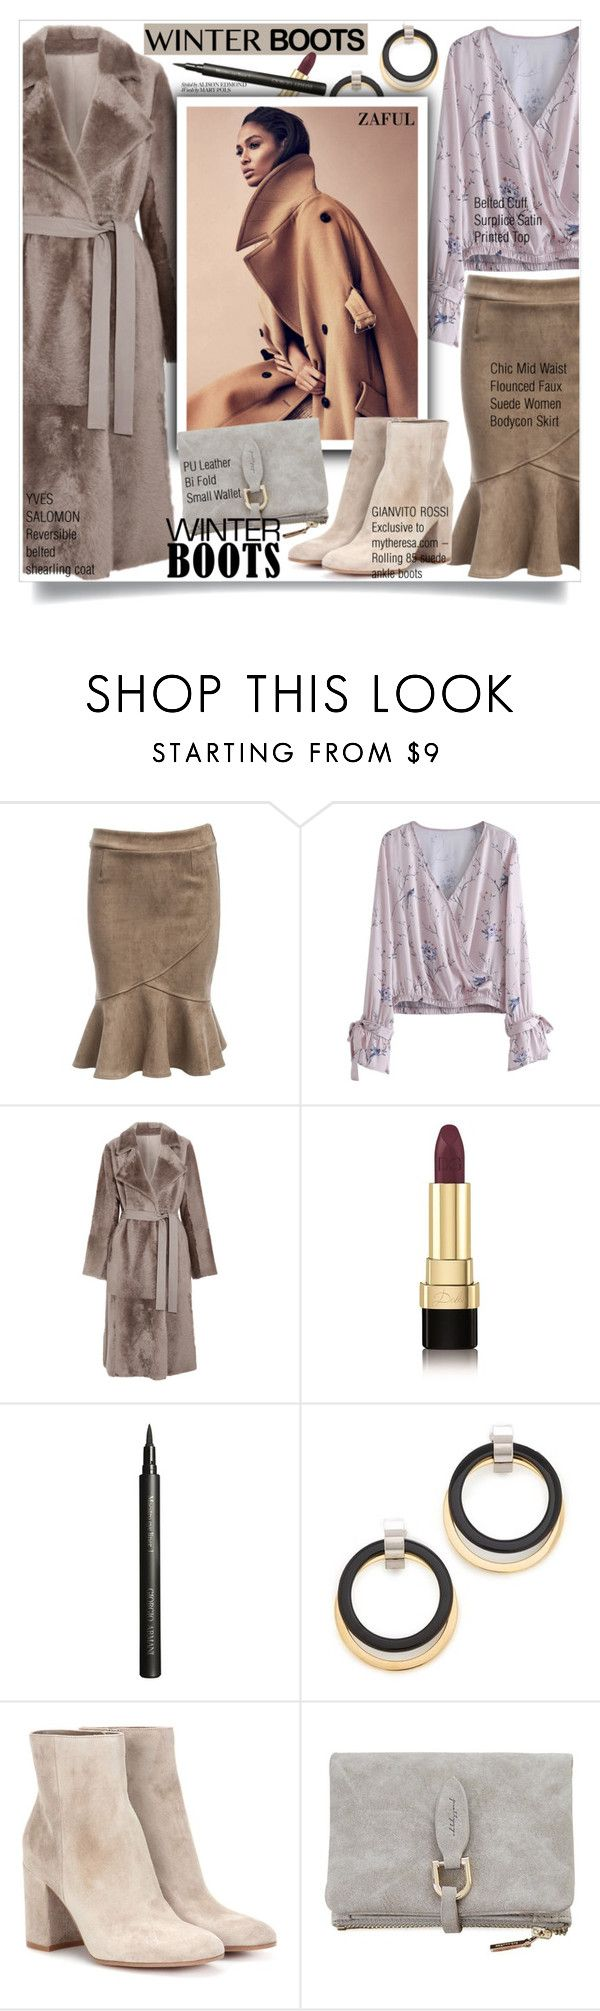 """""""So Cozy: Winter Boots"""" by sweetsely ❤ liked on Polyvore featuring Yves Salomon, Dolce&Gabbana, Giorgio Armani, Marni, Gianvito Rossi, polyvoreeditorial, winterboots, suedebooties and shearlingcoats"""